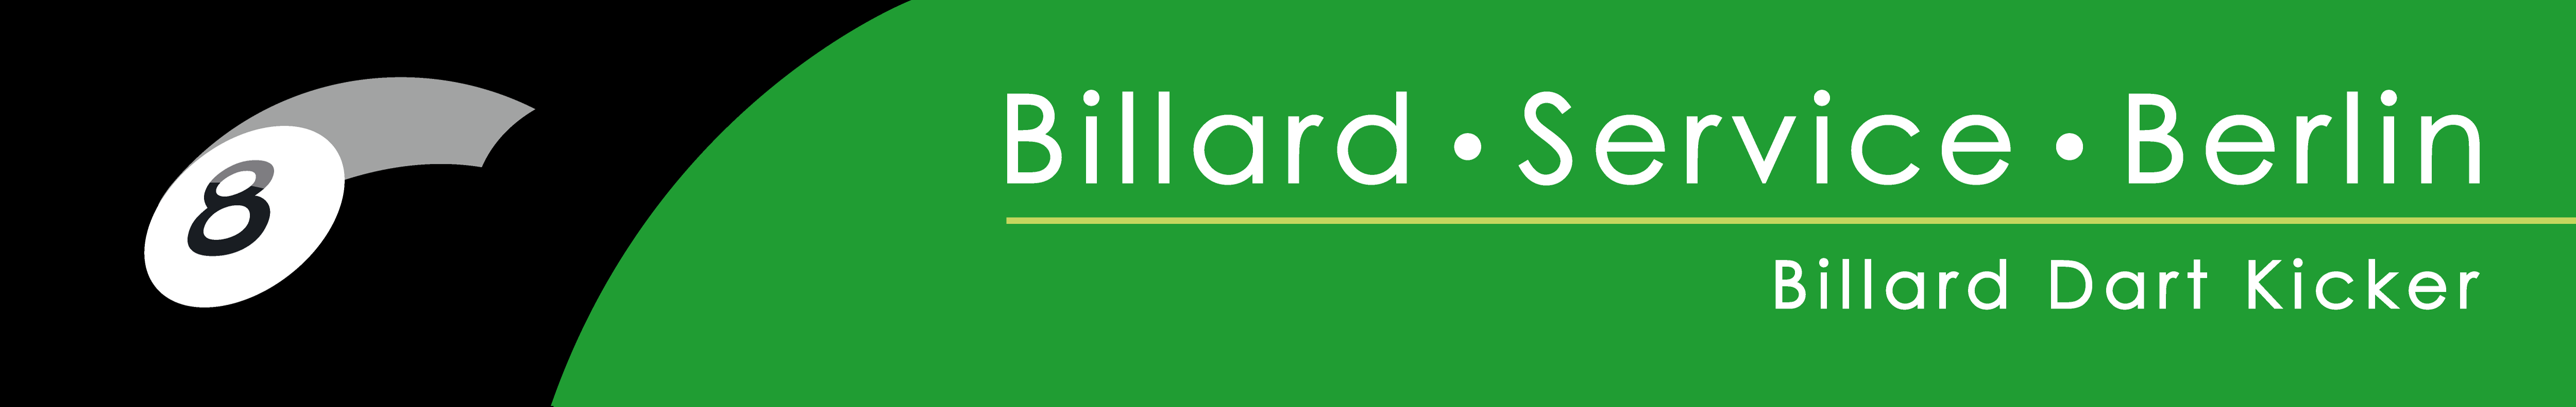 Billardservice Berlin